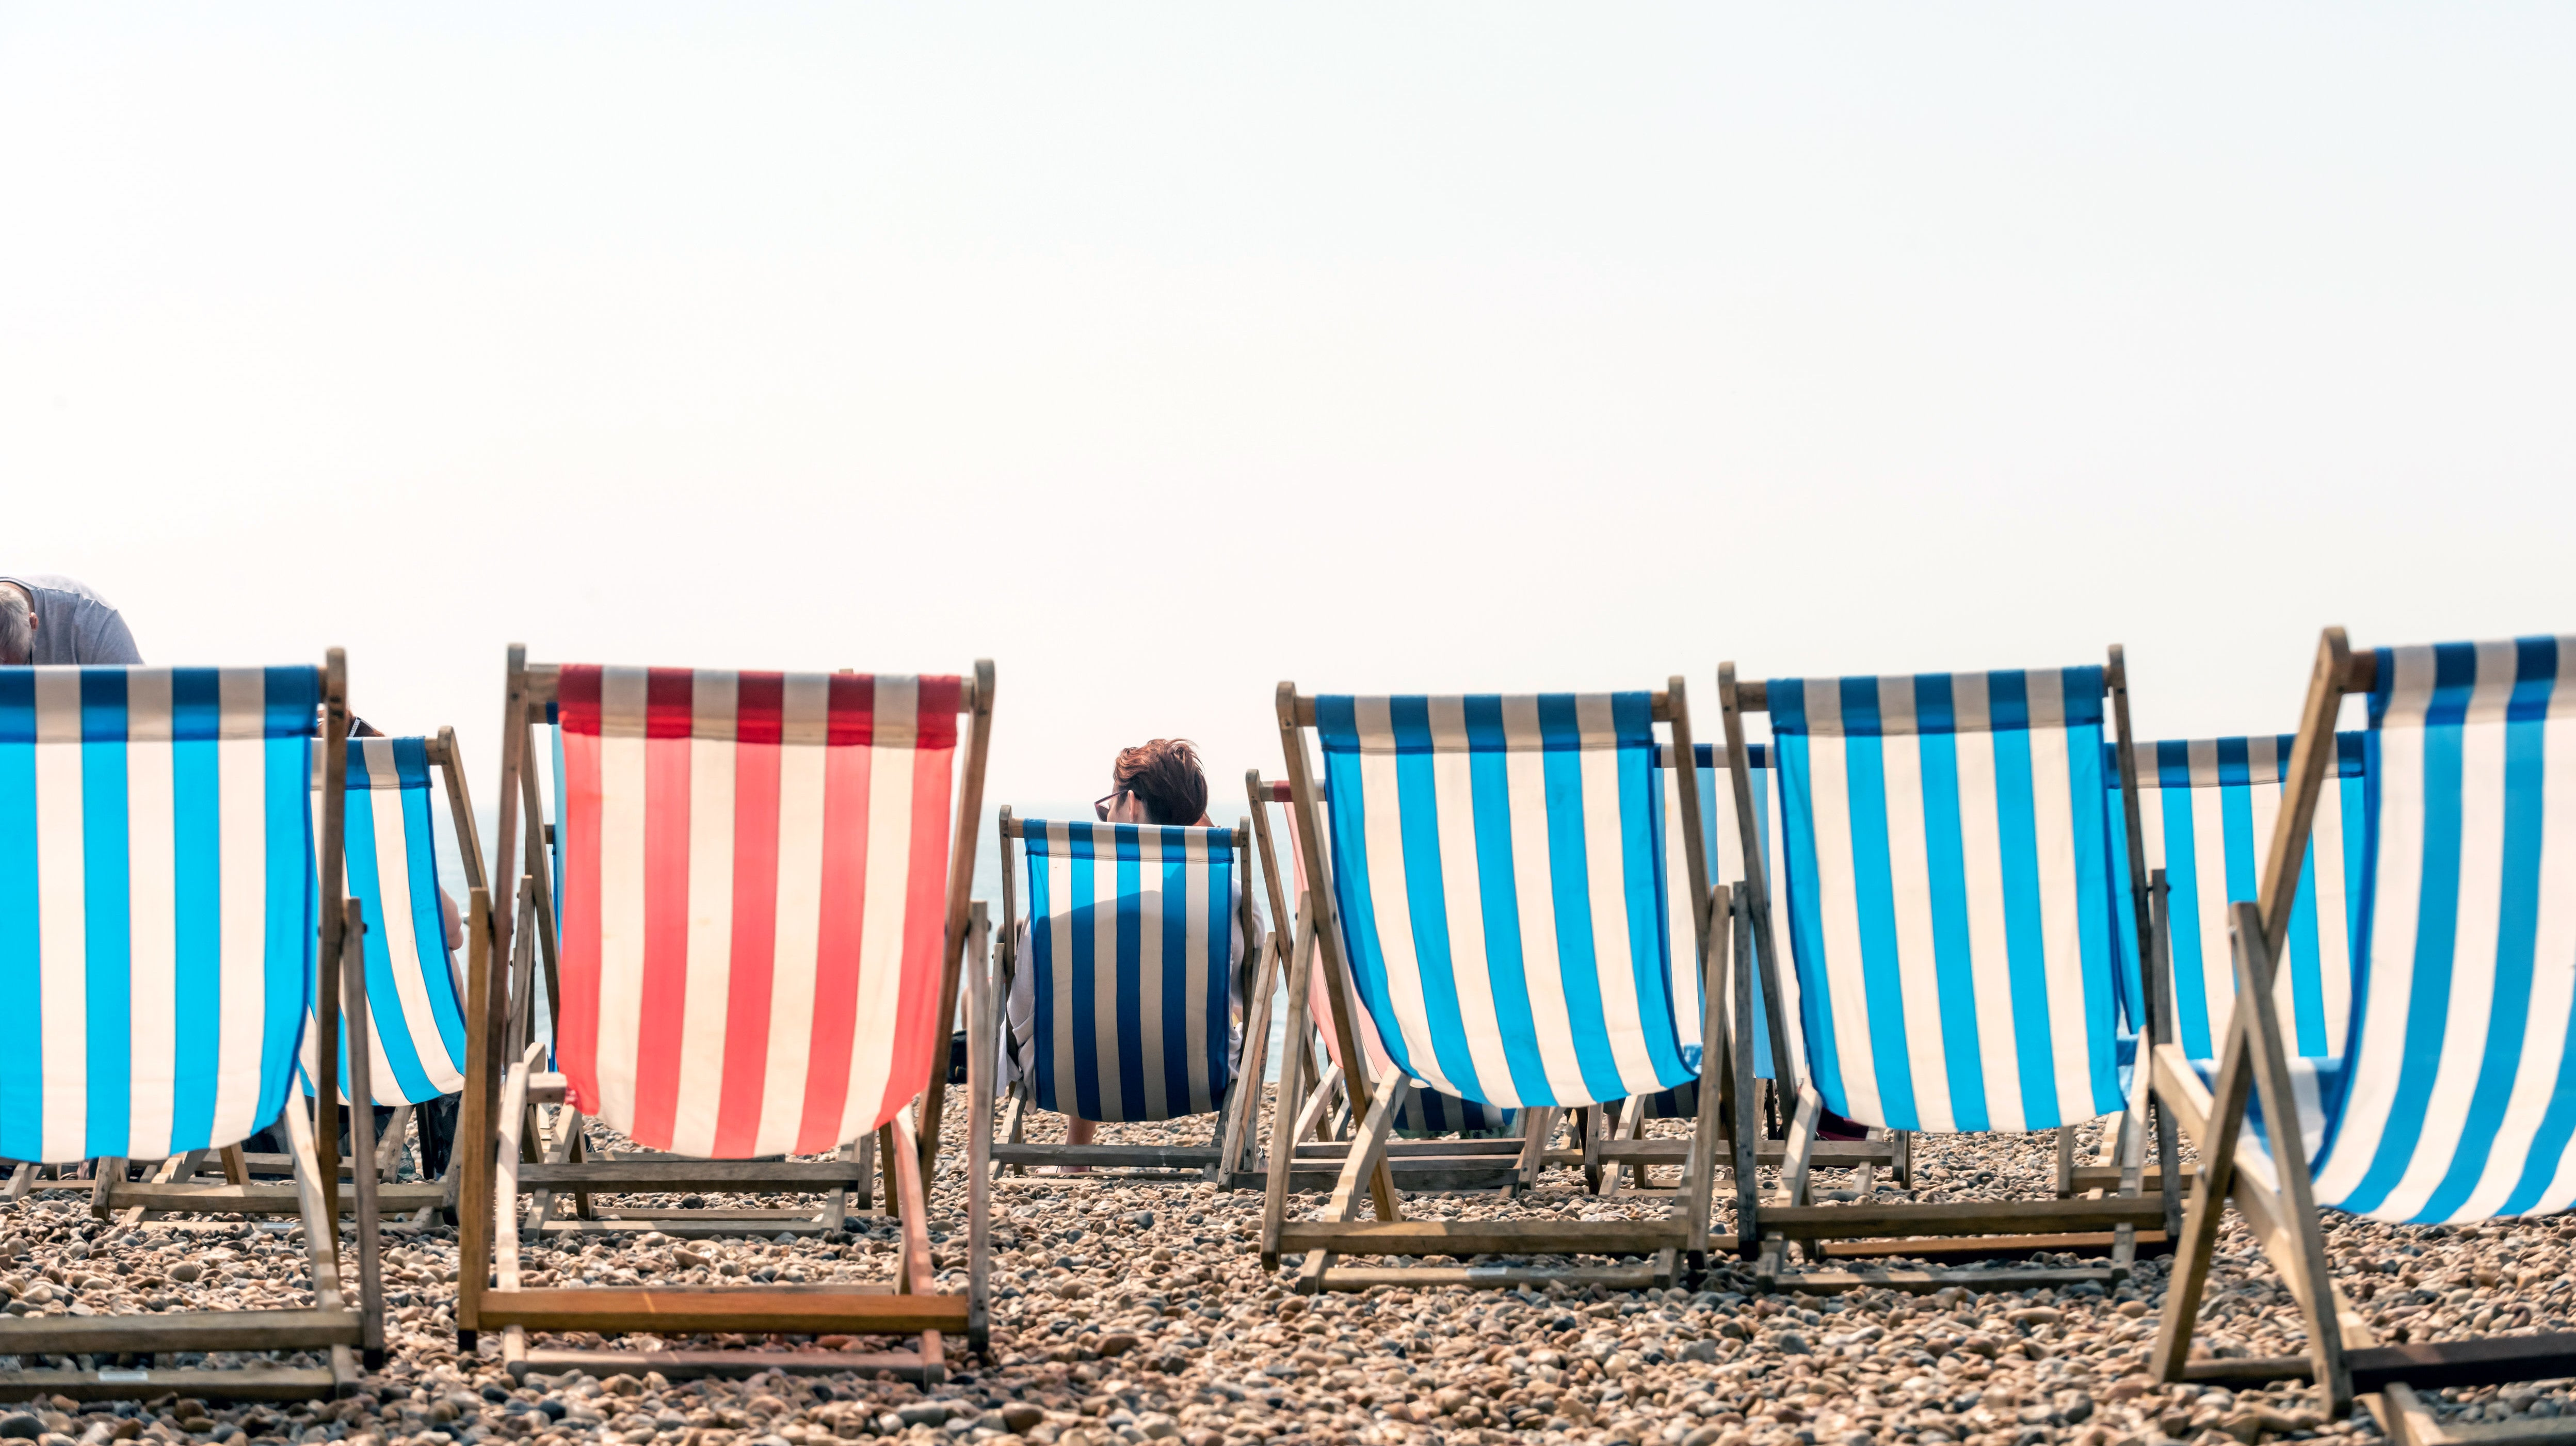 FDA Study Finds That Sunscreen Chemicals Reach Our Bloodstream, But The Health Risks Are Unclear